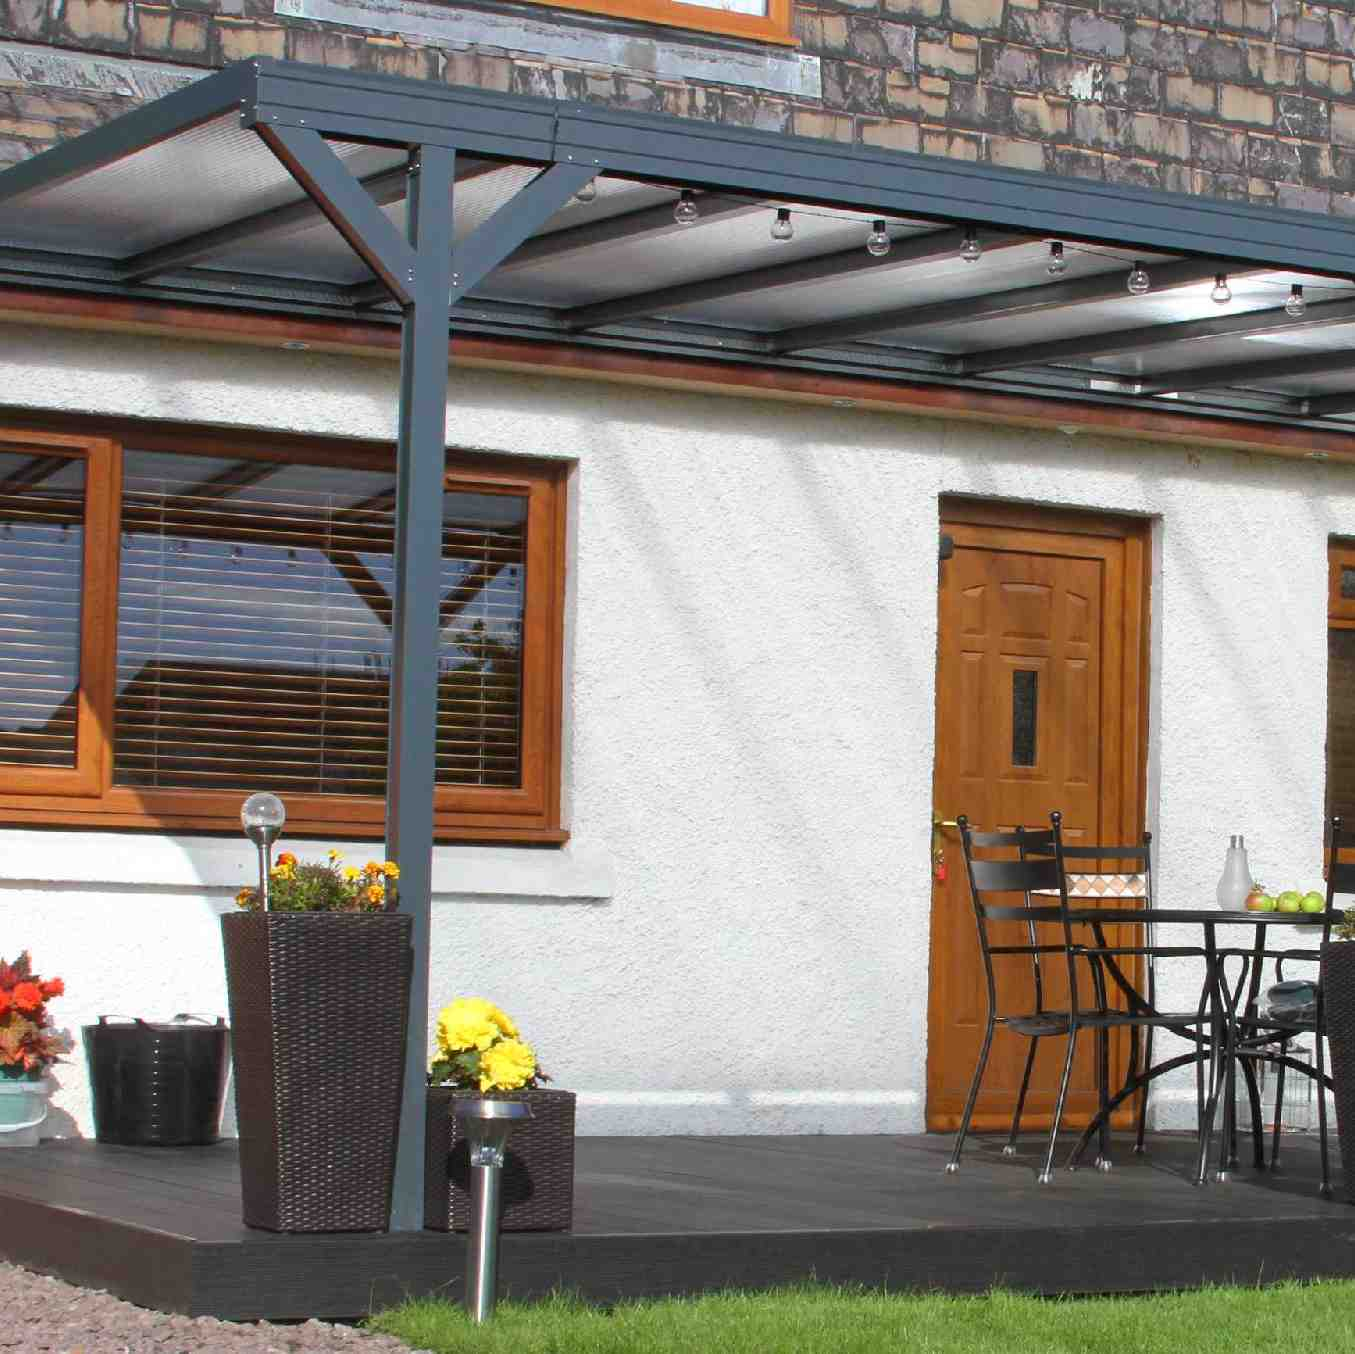 Omega Verandah, Anthracite Grey, 16mm Polycarbonate Glazing - 8.4m (W) x 4.0m (P), (4) Supporting Posts